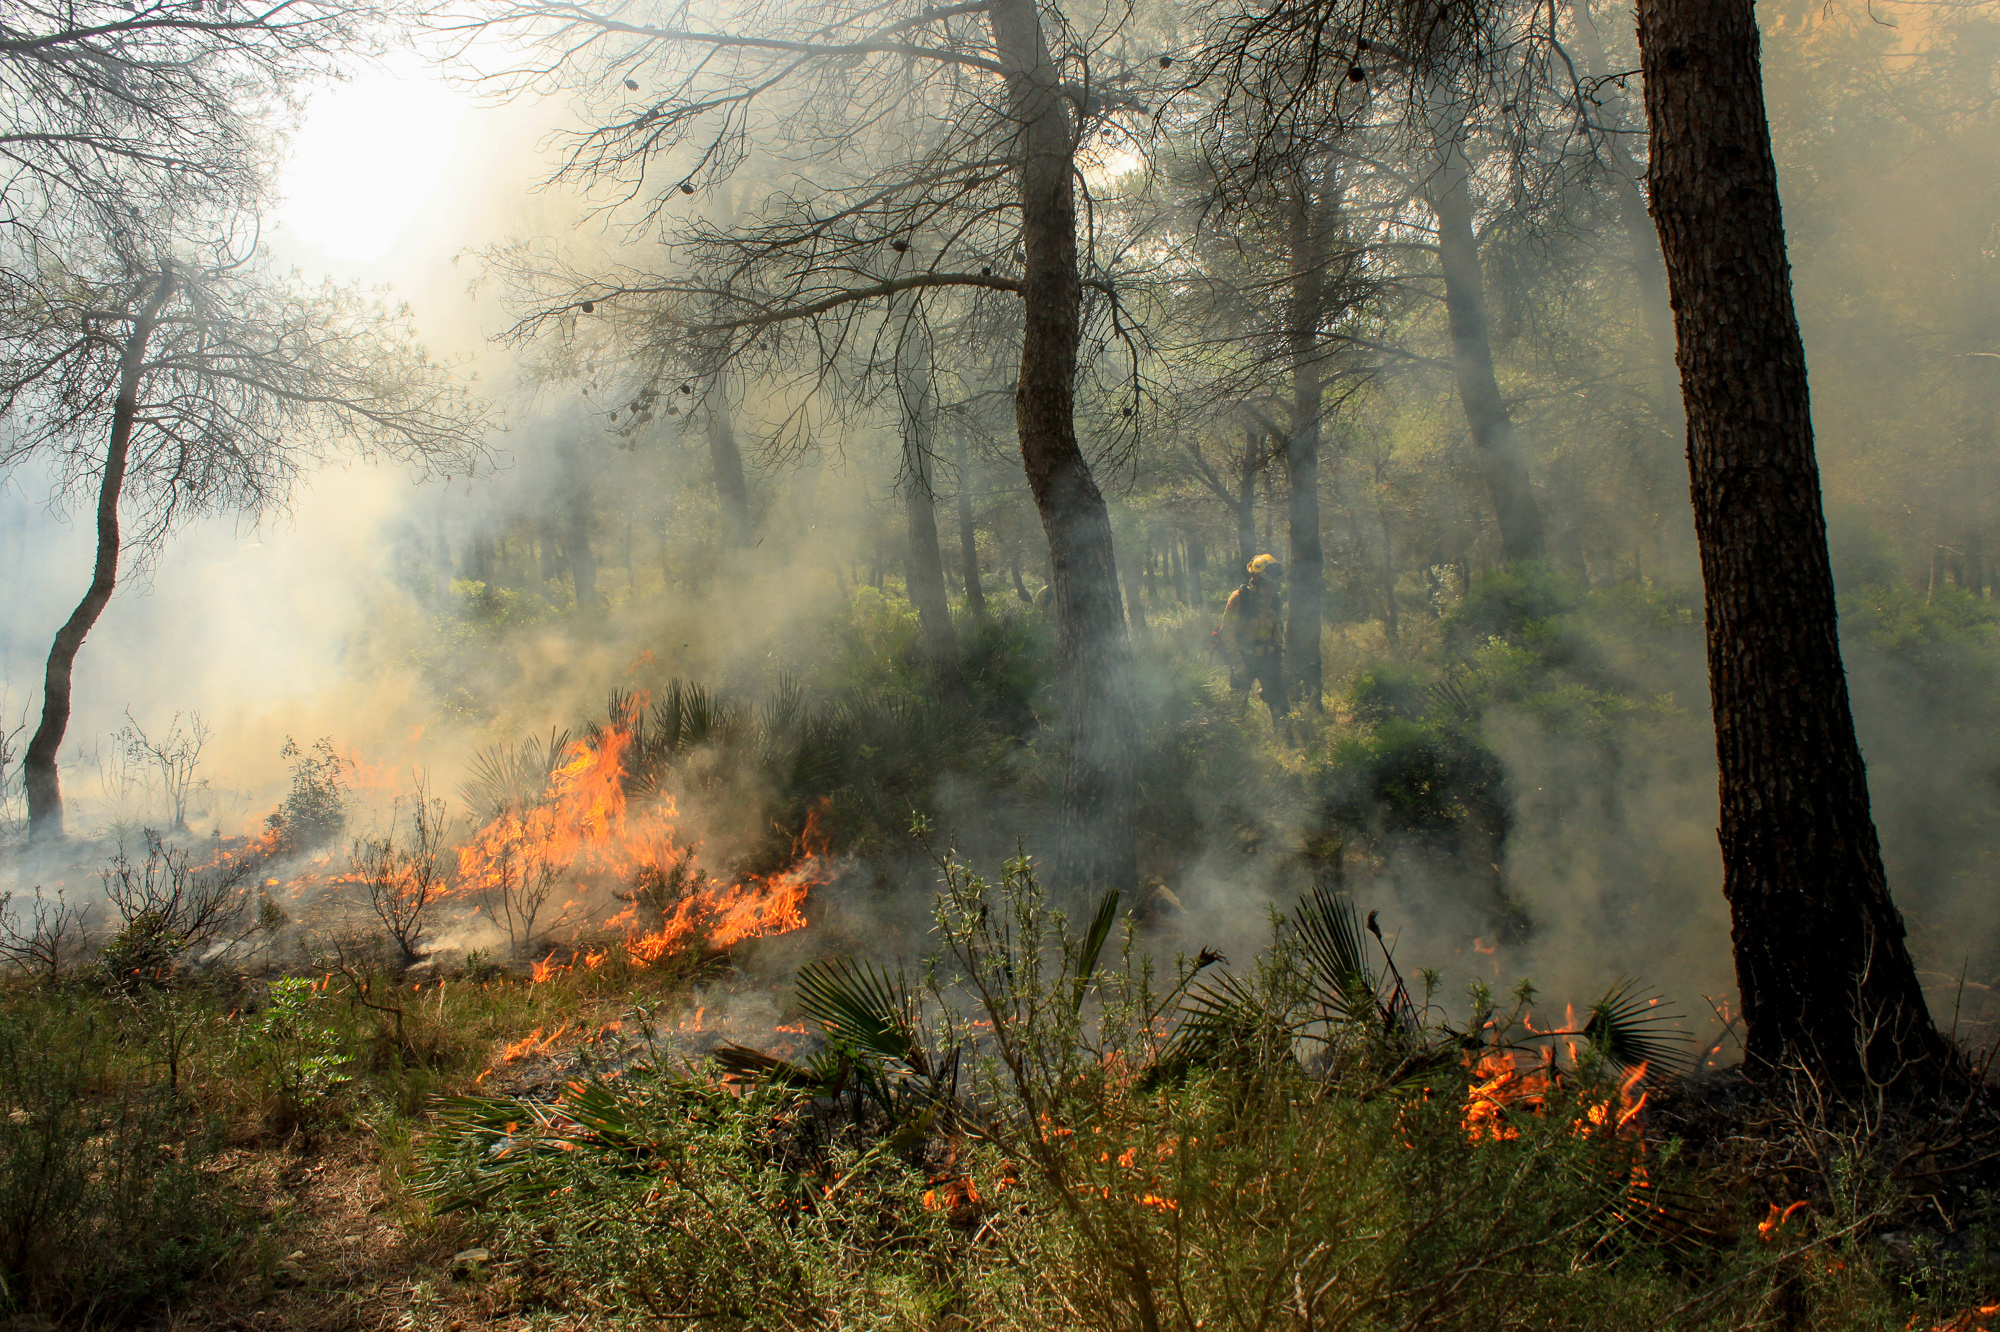 A Forest Expert Team In Spain Fights Fire With Fire — Literally